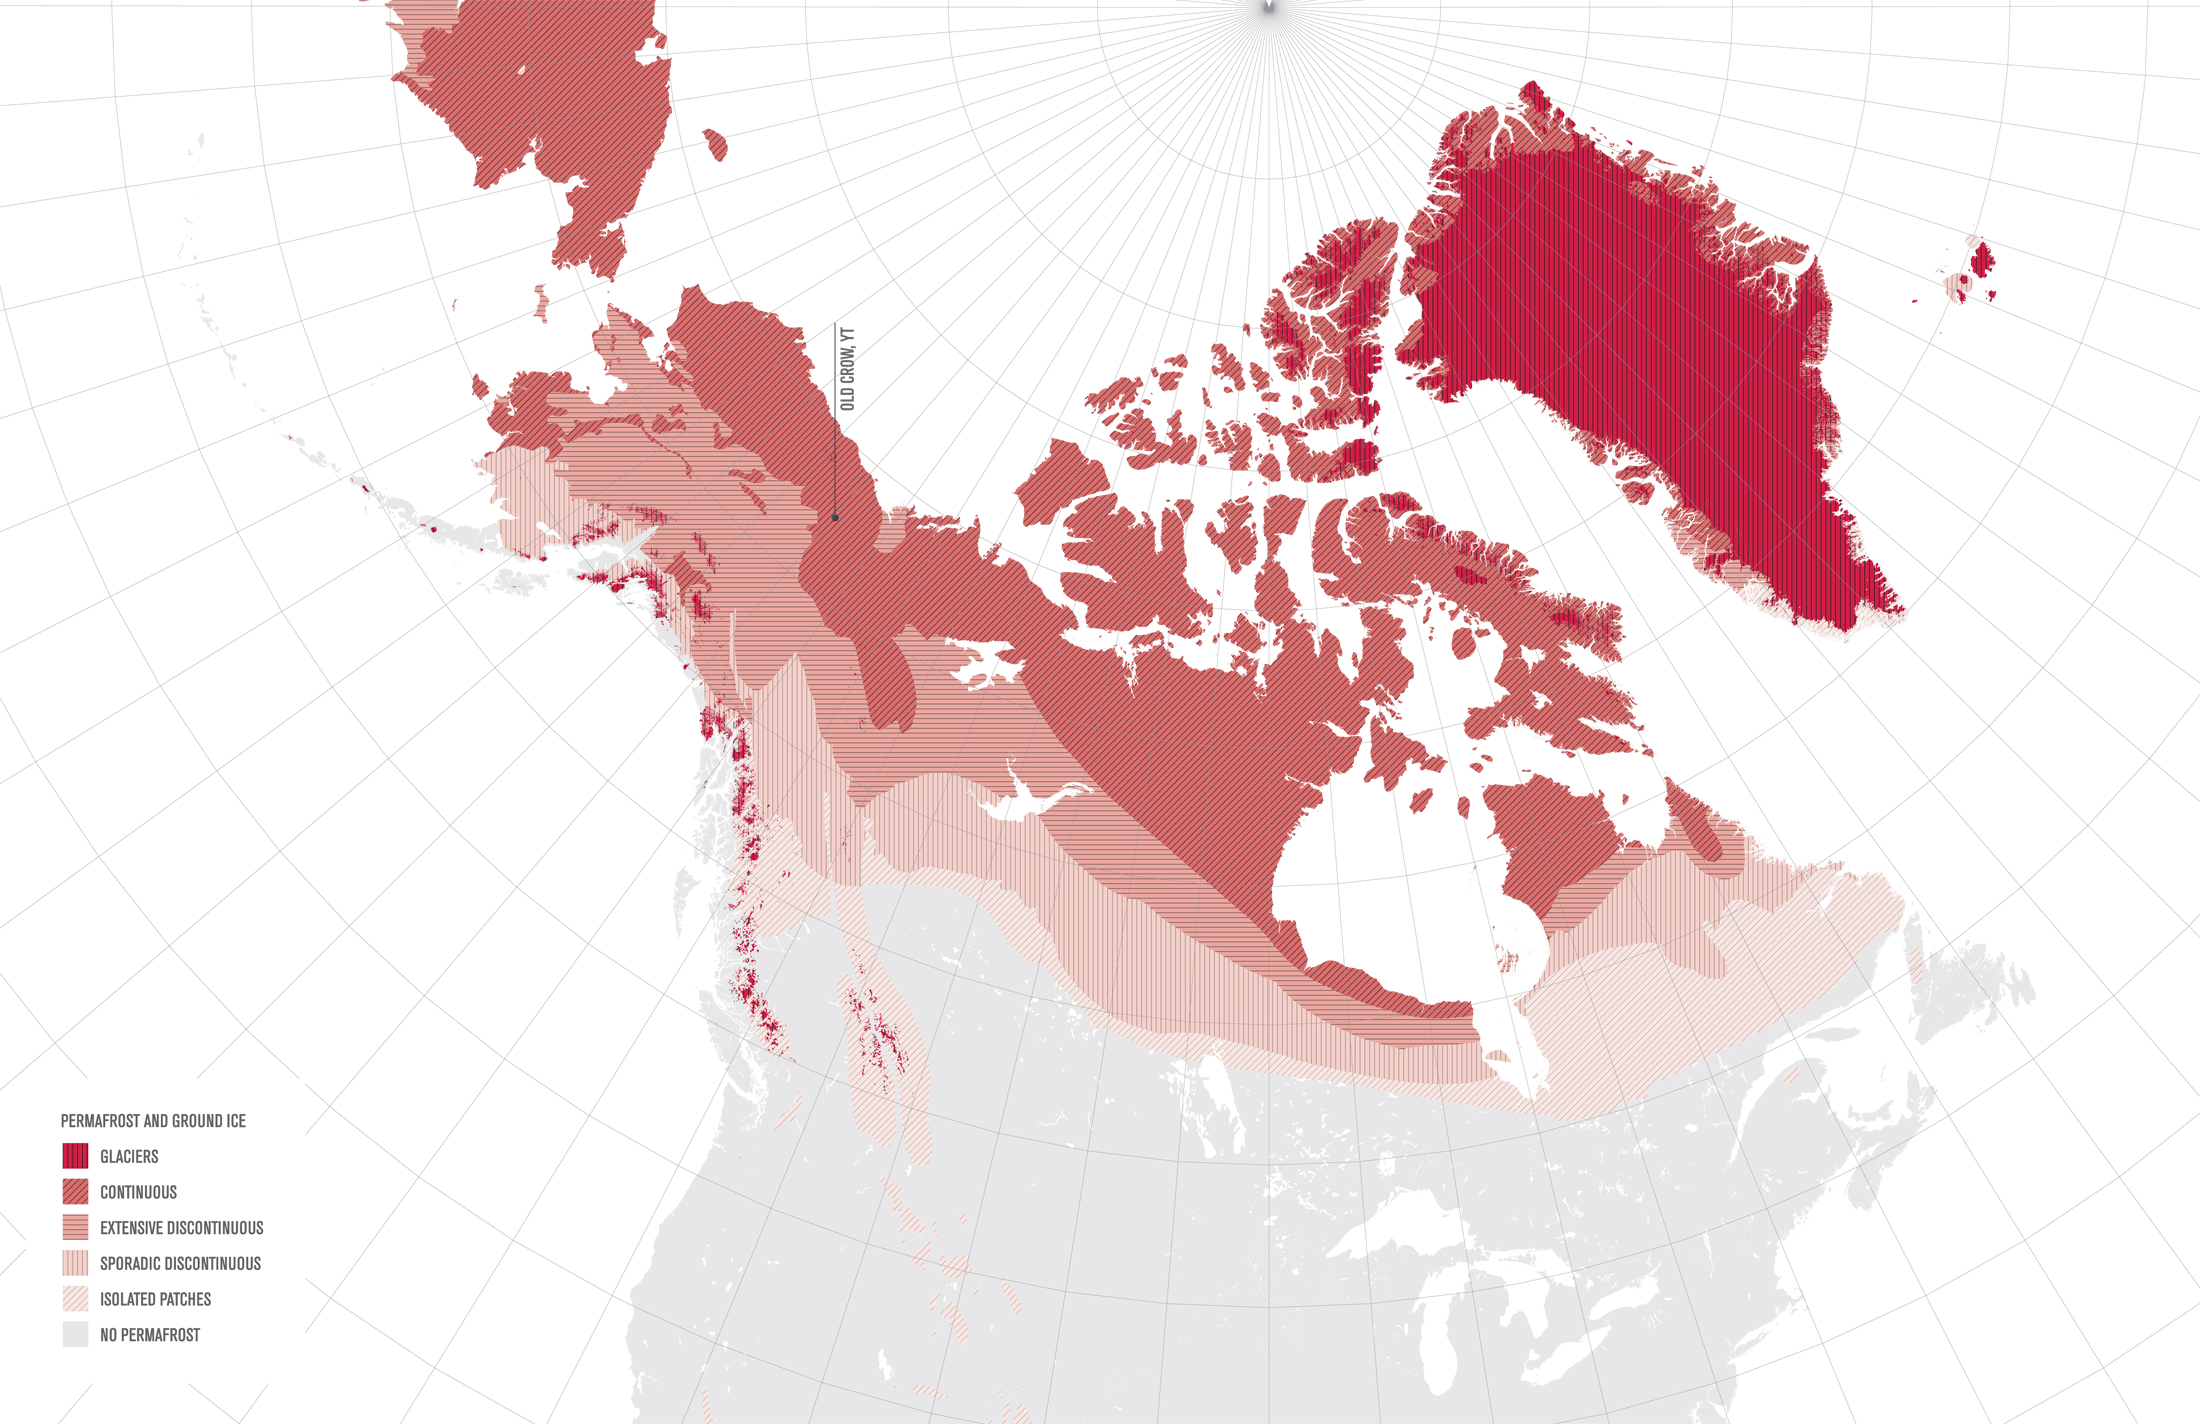 Image 1: Permafrost map of Canada (Data courtesy of National Snow and Ice Data Centre)